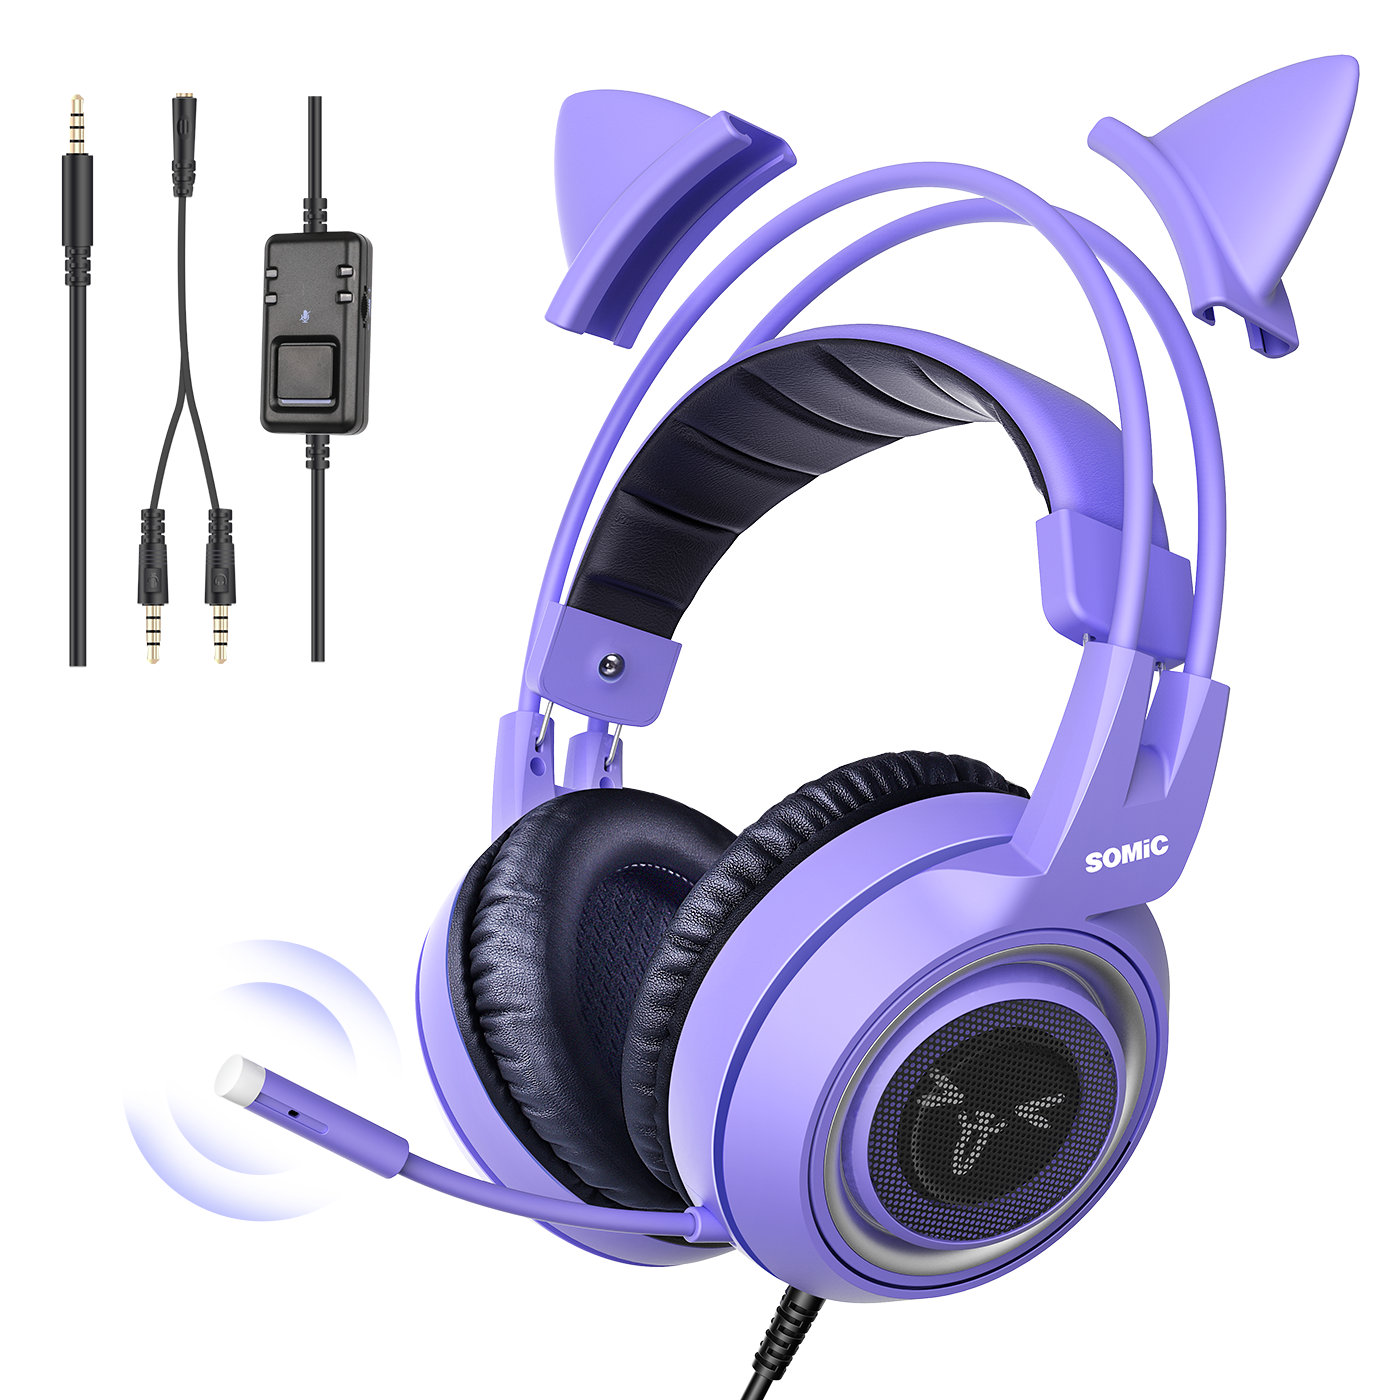 Somic G951s Purple Stereo Gaming Headset With Mic For Ps4 Xbox One Pc Phone Detachable Cat Ear 3 5mm Noise Reduction Headphone Gaming Headphones Headset Noise Reduction Headphones